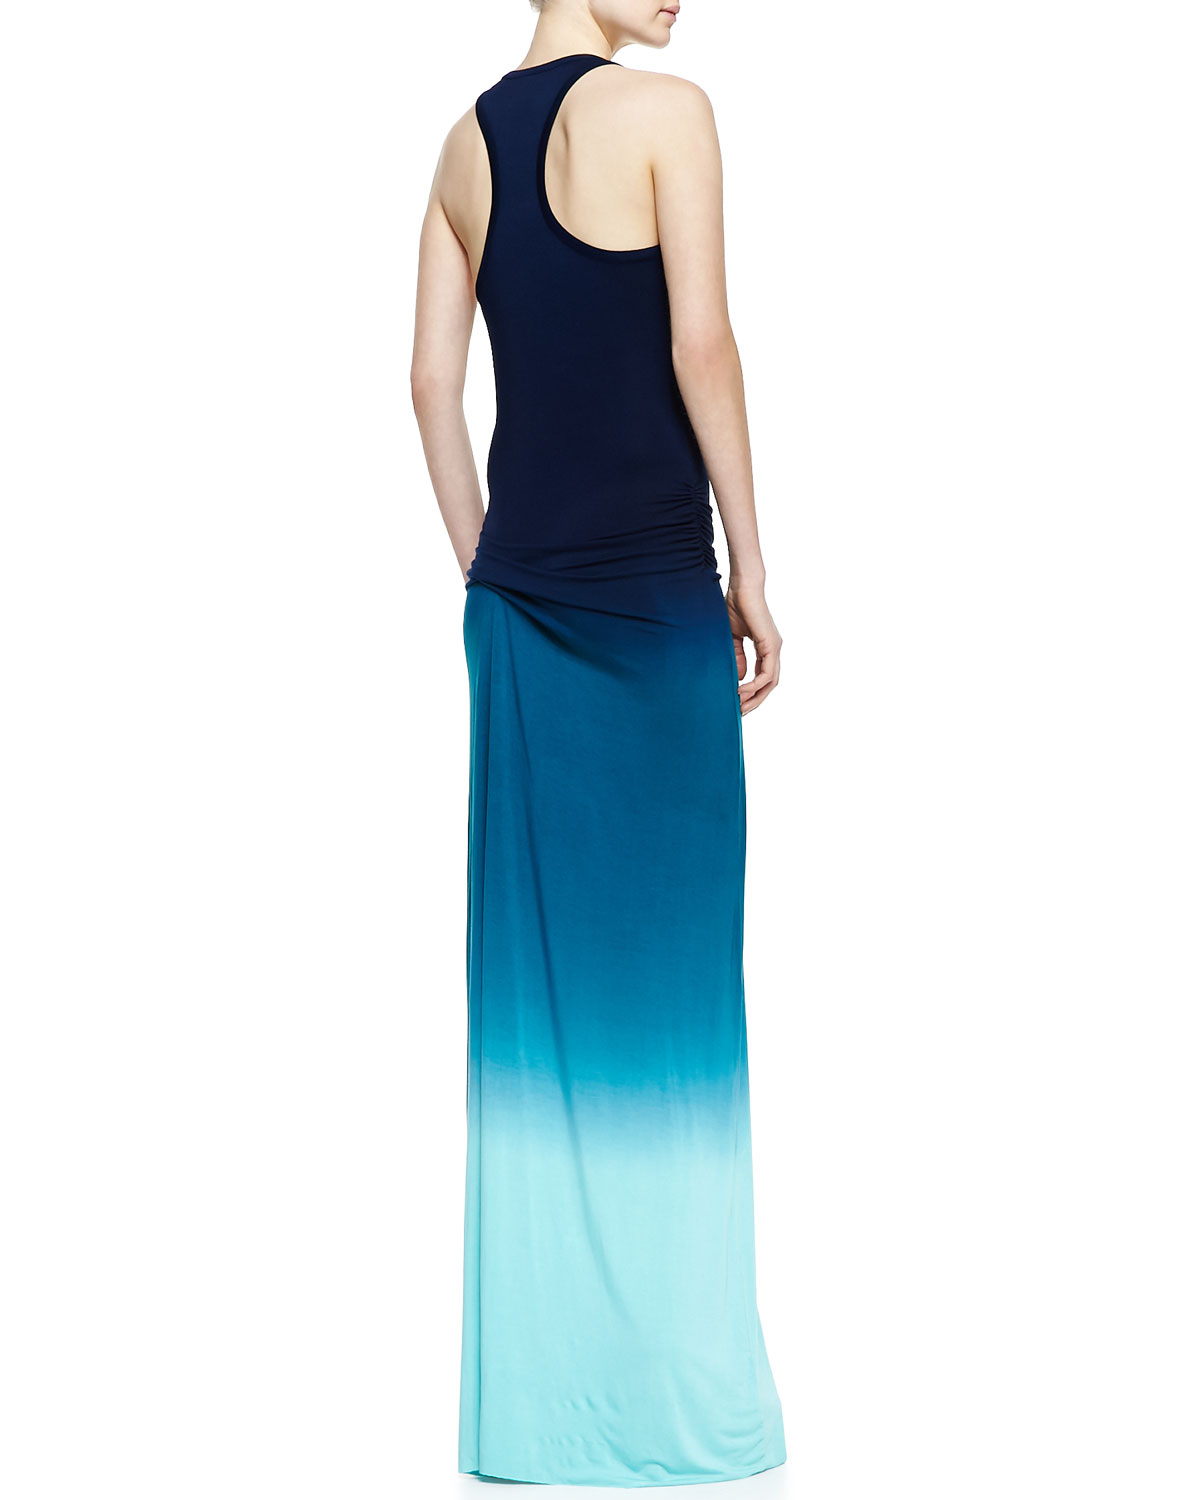 Lyst Young Fabulous Broke Hamptons Racerback Ombre Maxi Dress In